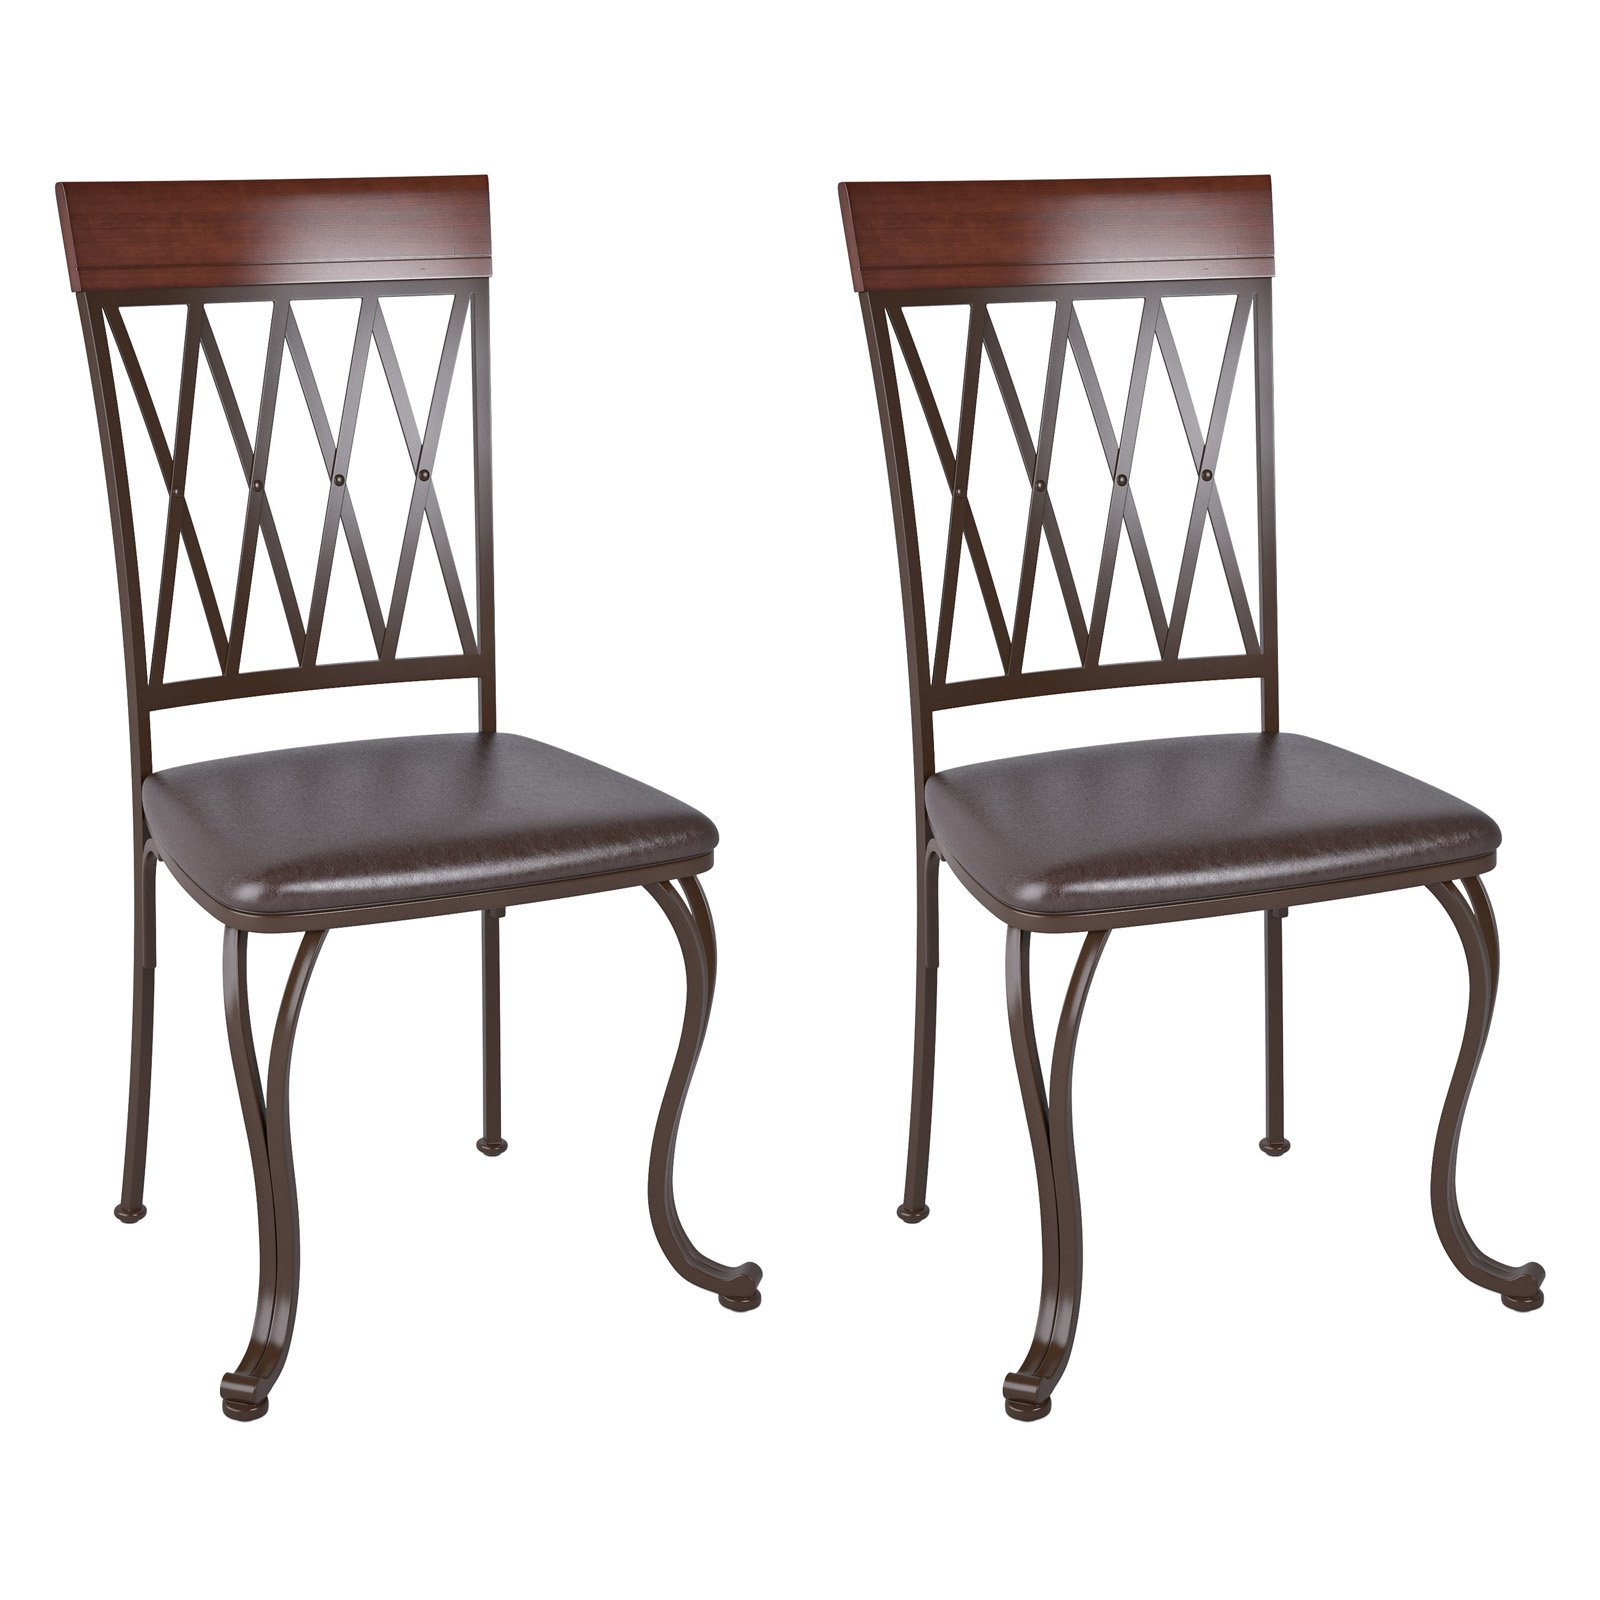 CorLiving Jericho Metal Dining Chair with Dark Brown Bonded Leather Seats, Set of 2